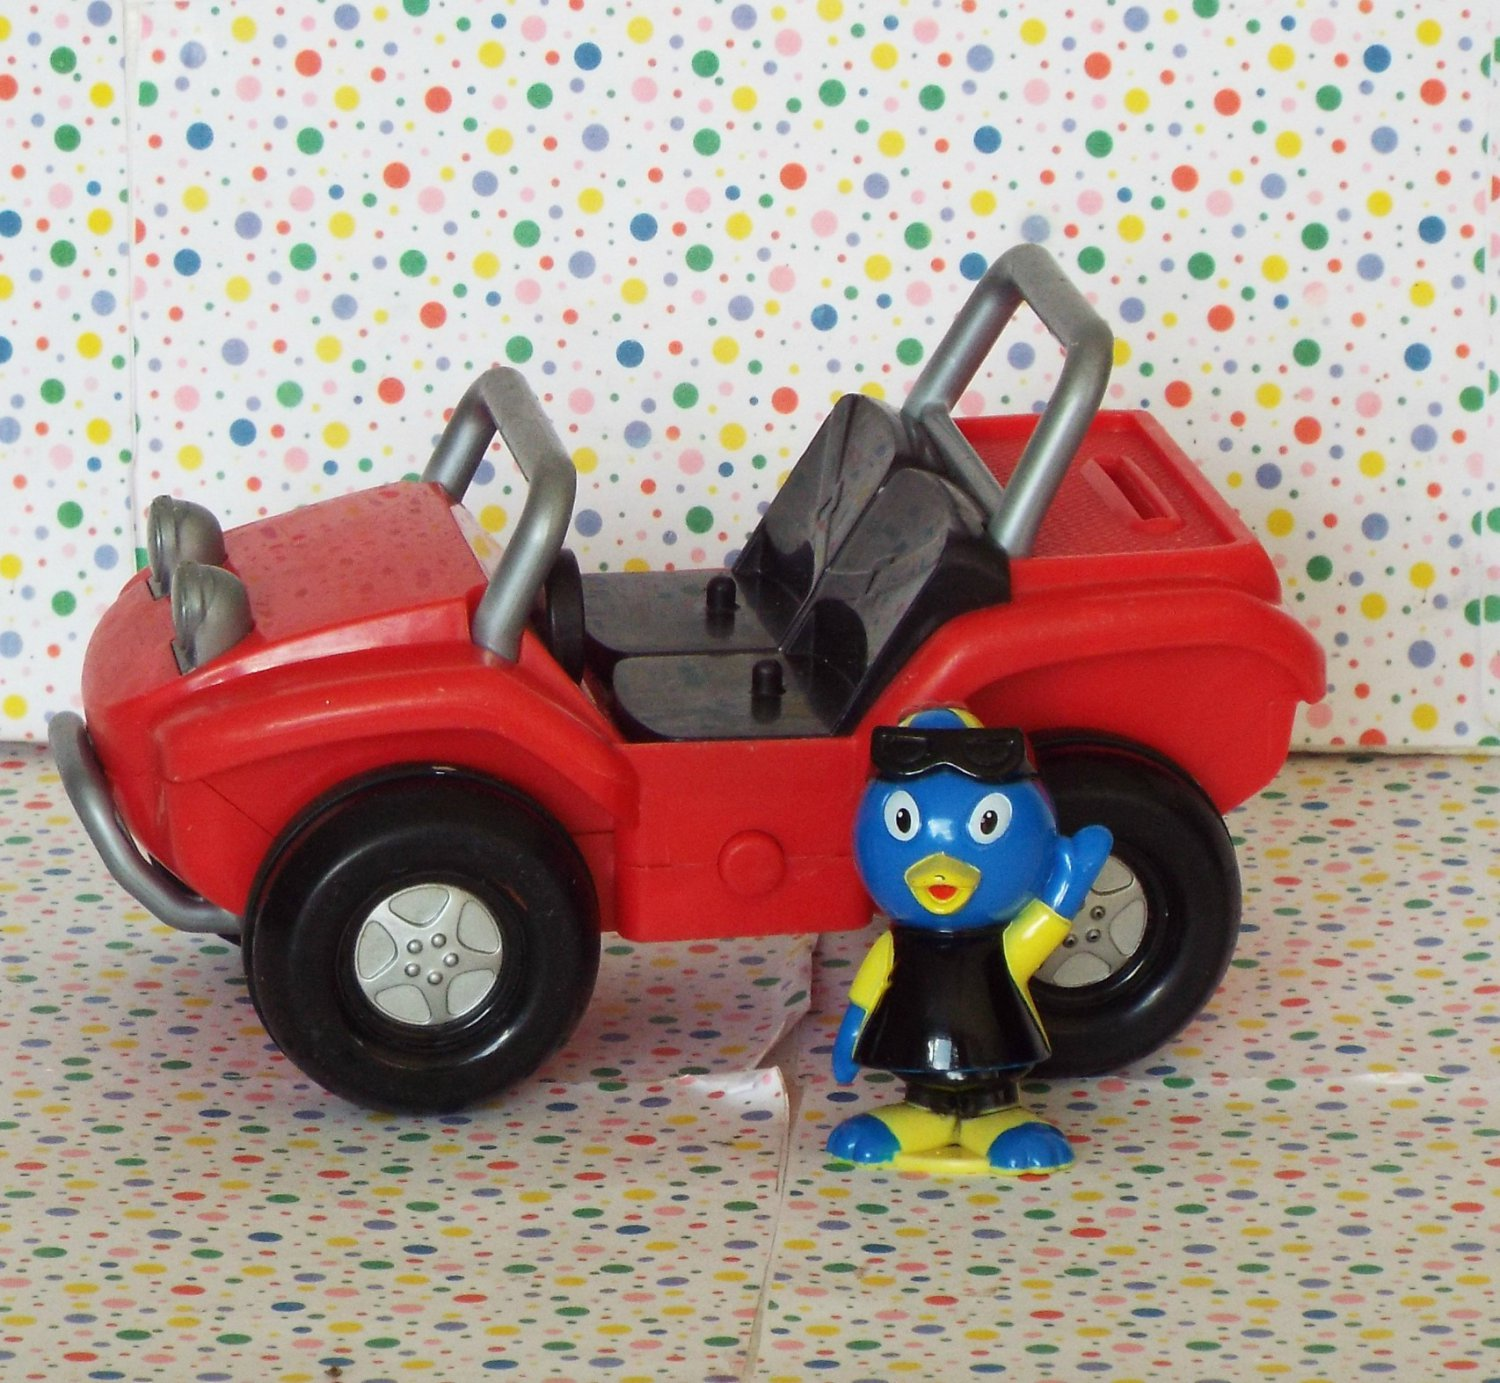 rc car stores with Fisher Price Backyardigans Bobblin Dune on Fisher Price Backyardigans Bobblin Dune besides Magic Tracks Race Track With 2 Cars 360PCS 222672264705 as well 443112050810543577 additionally 32736277853 also 32318229377.